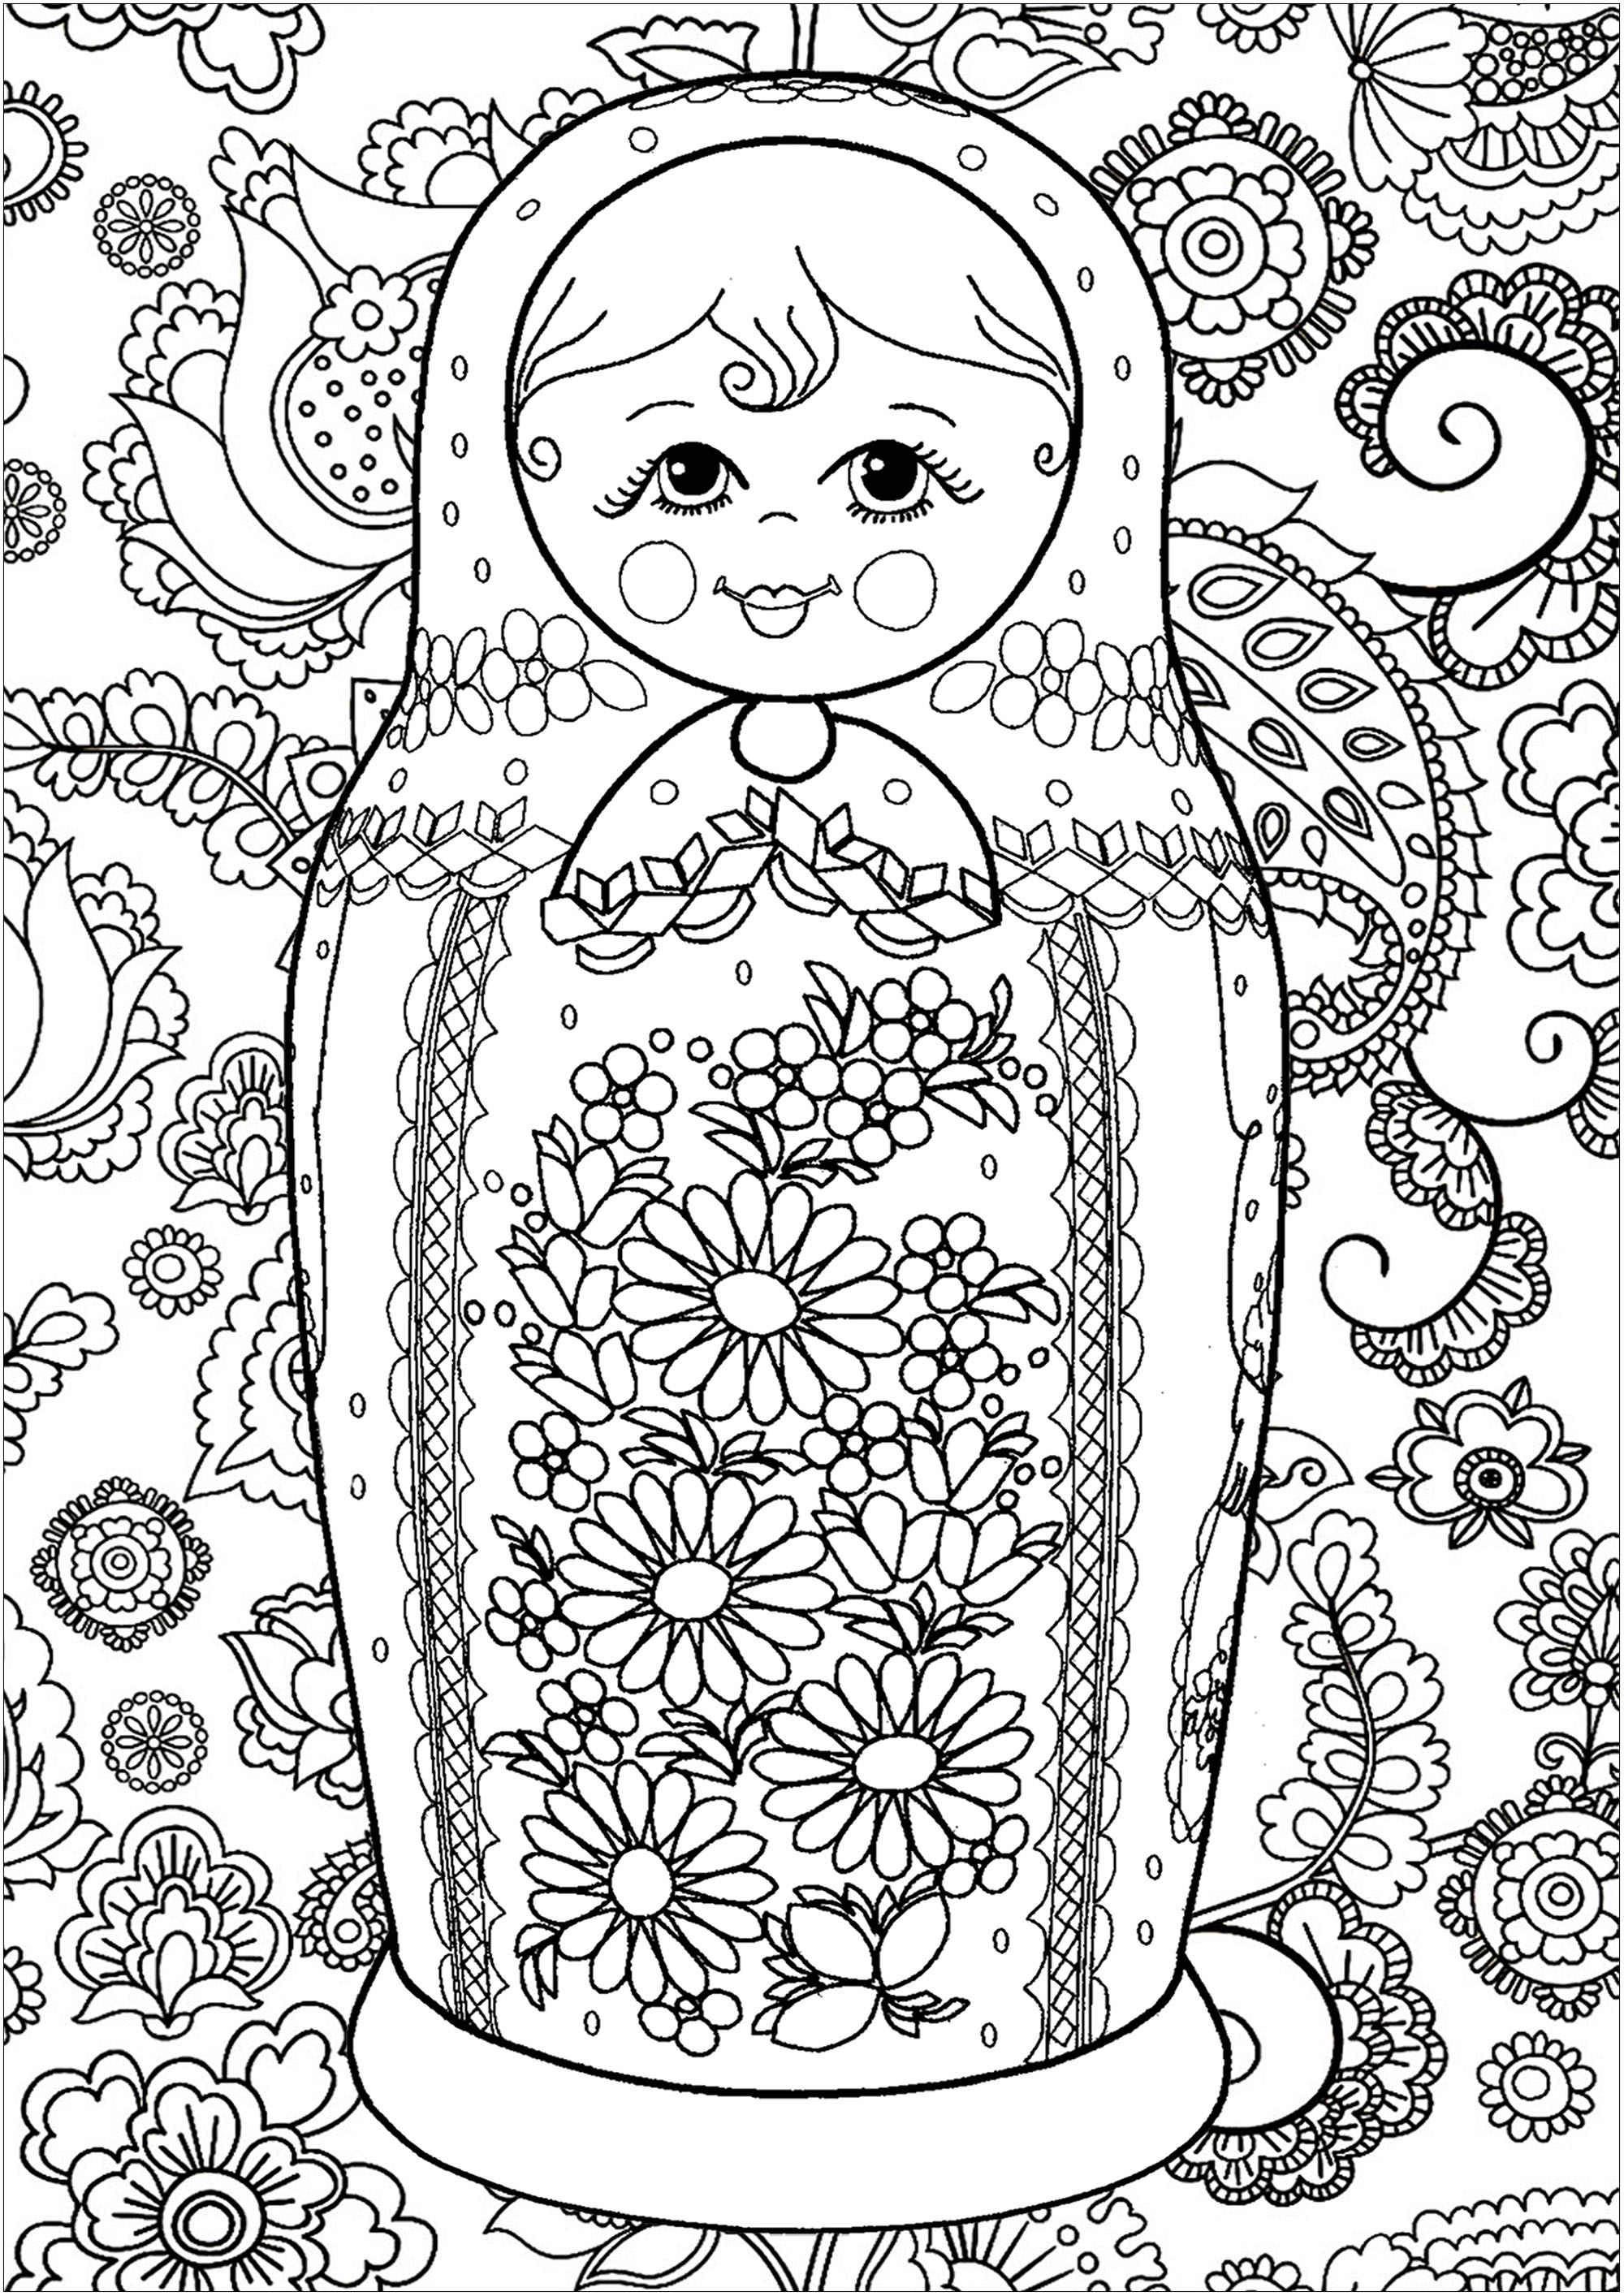 Beautiful flowers inside and outside a simple and smiling russian doll